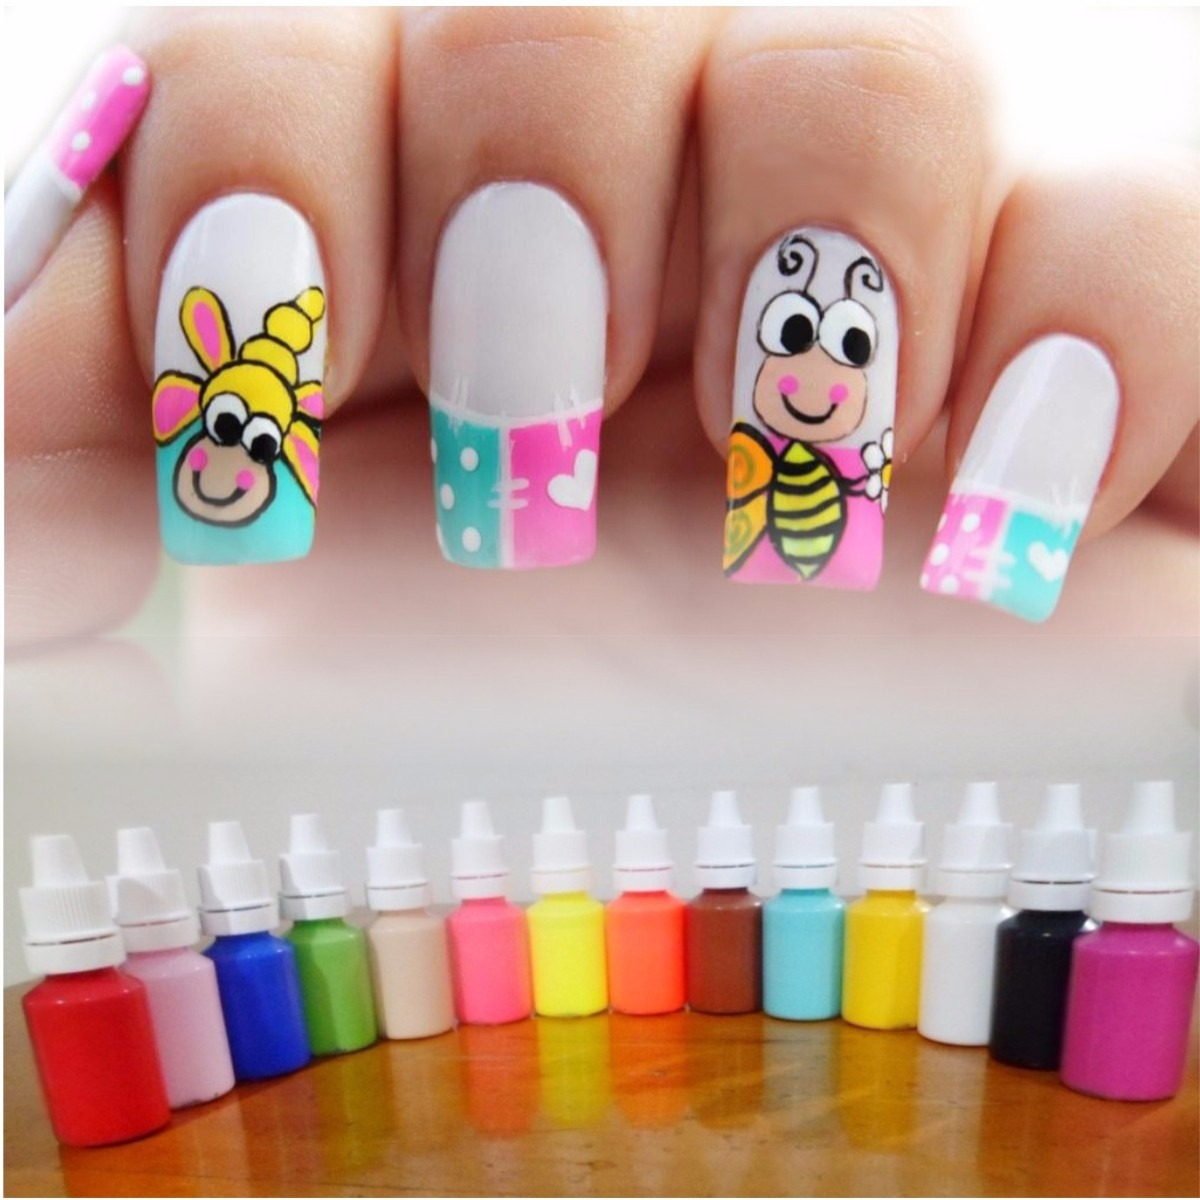 Kit de 12 pinturas acr licas nail art decoraci n u as for Unas facil de decorar en casa